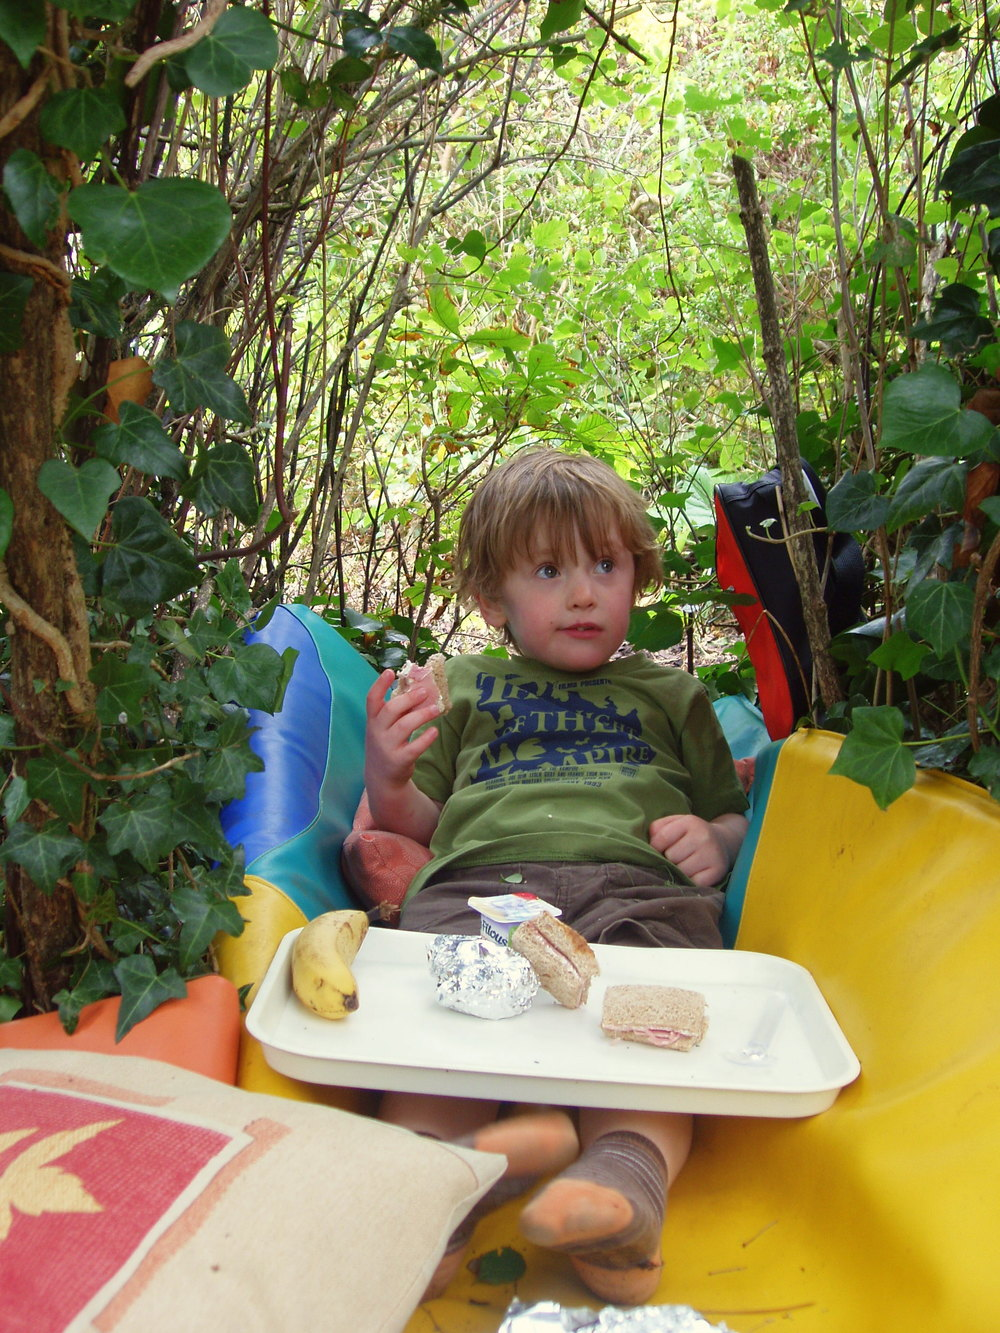 Eddie lunch in garden.JPG